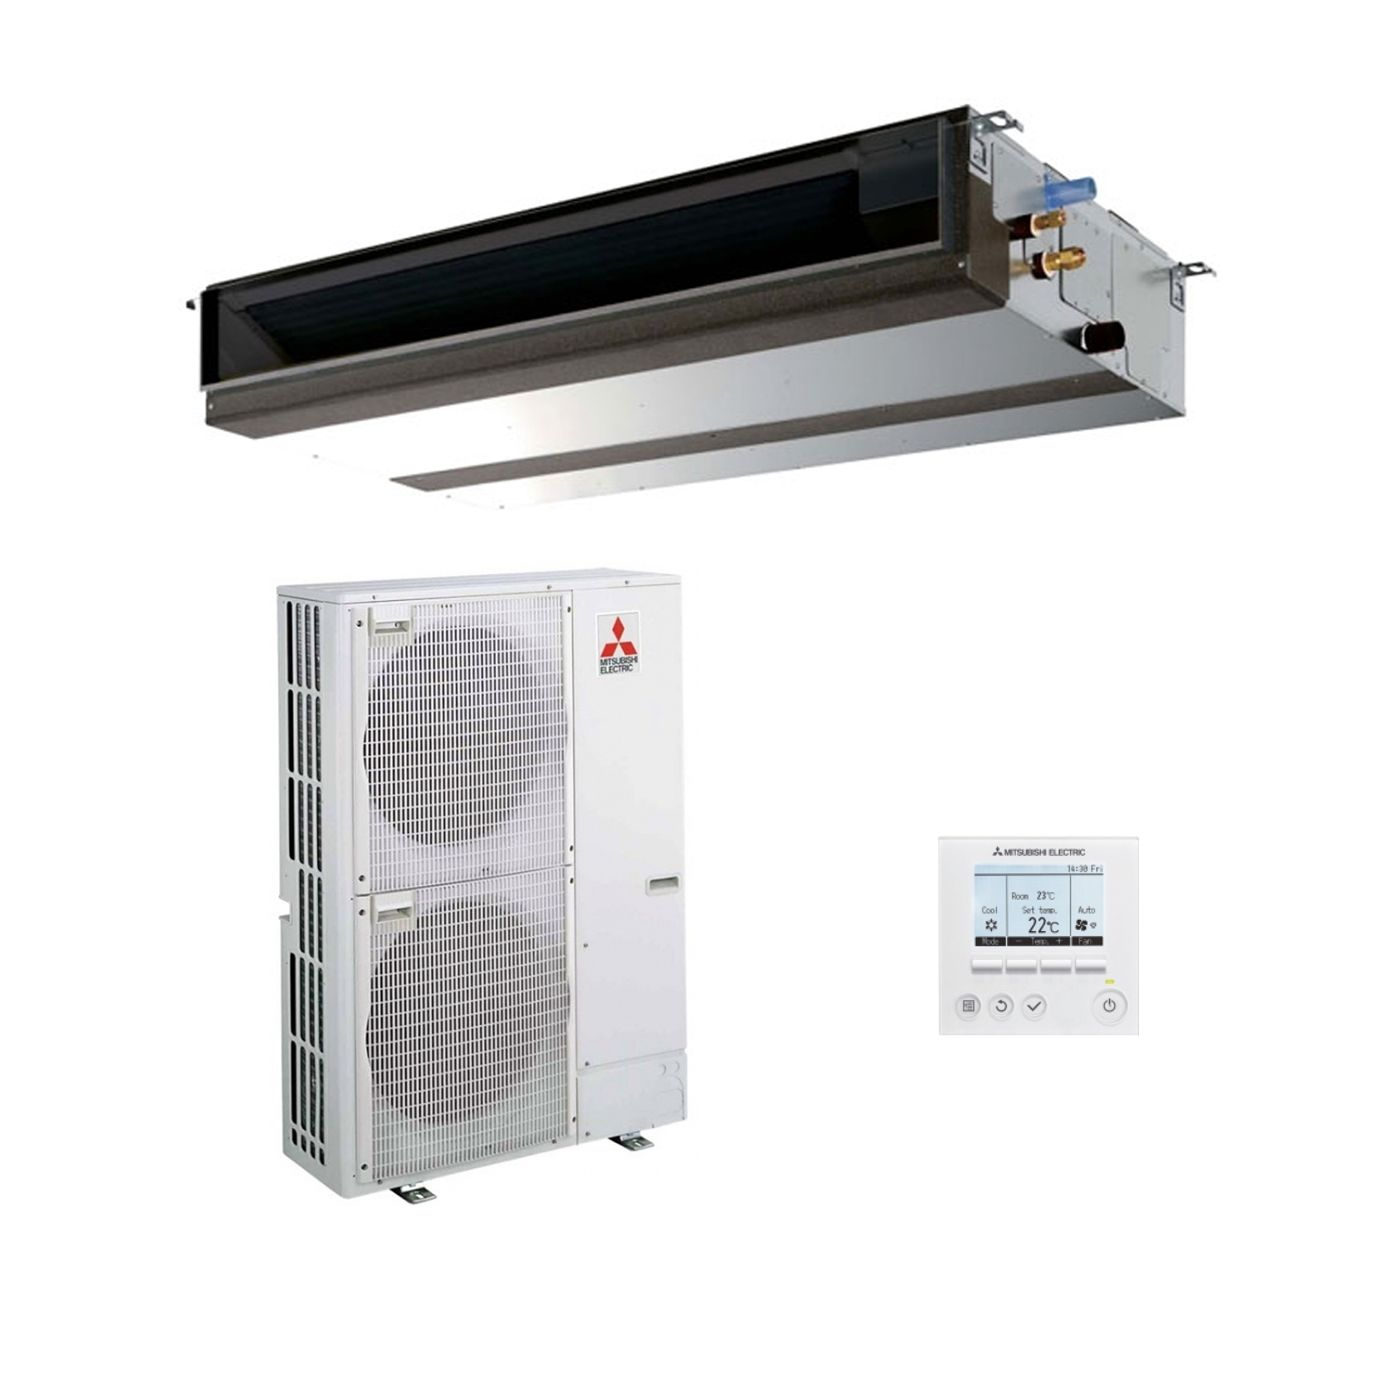 Mitsubishi Electric Air Conditioning PEAD-M125JA Ducted Concealed Inverter  Heat Pump 12.5Kw/42000Btu R32 A+ 240V/414V~50Hz